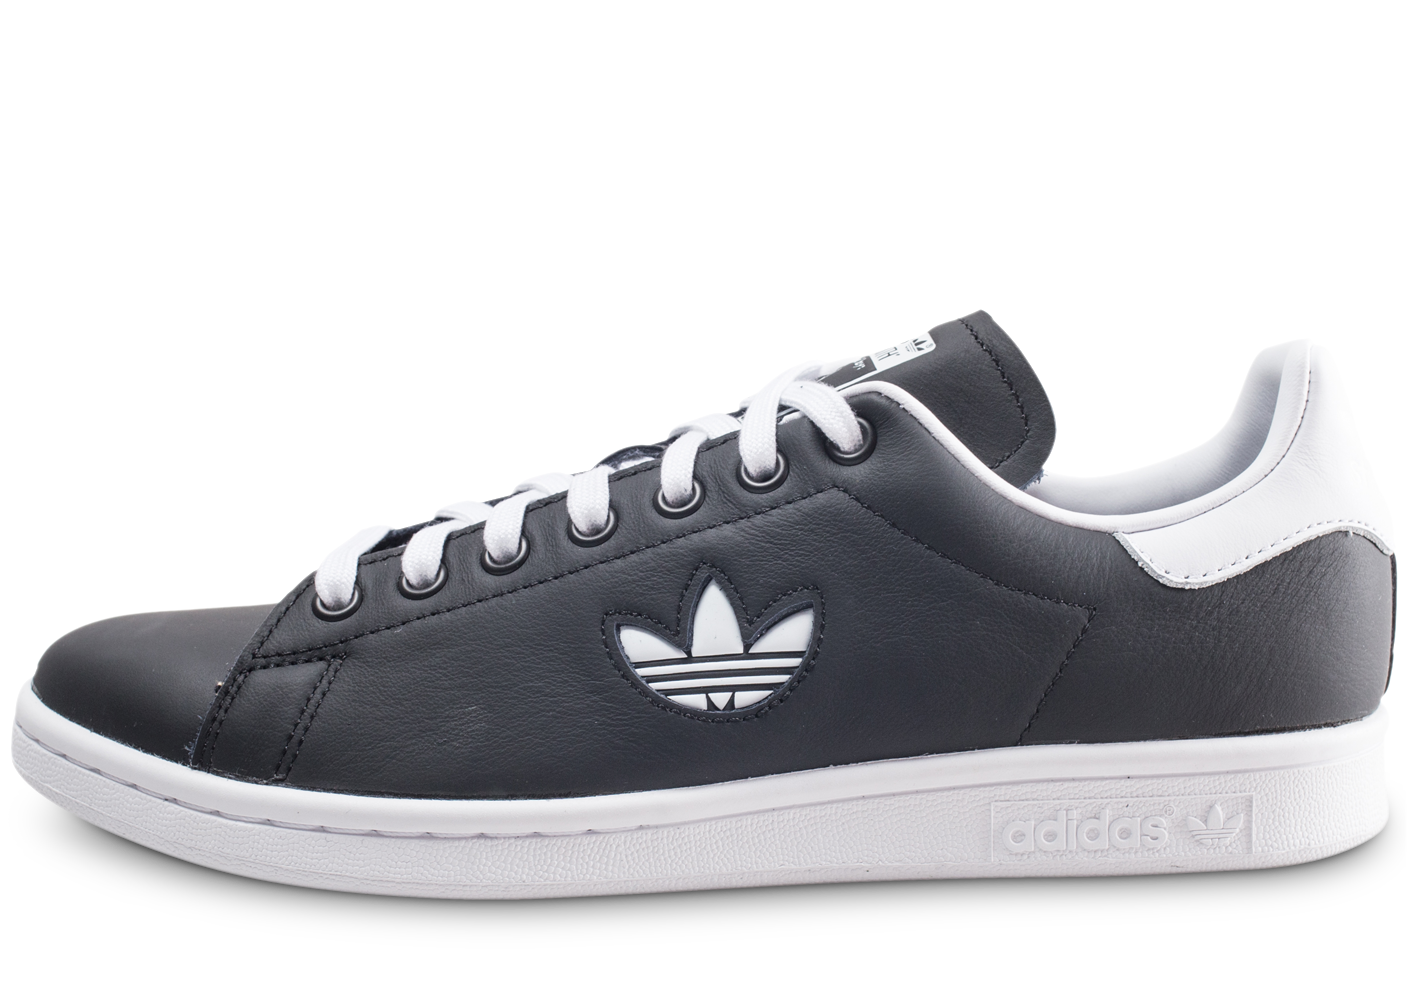 revendeur c3703 4955f adidas stan smith jusqu'à - 63 % - Pureshopping